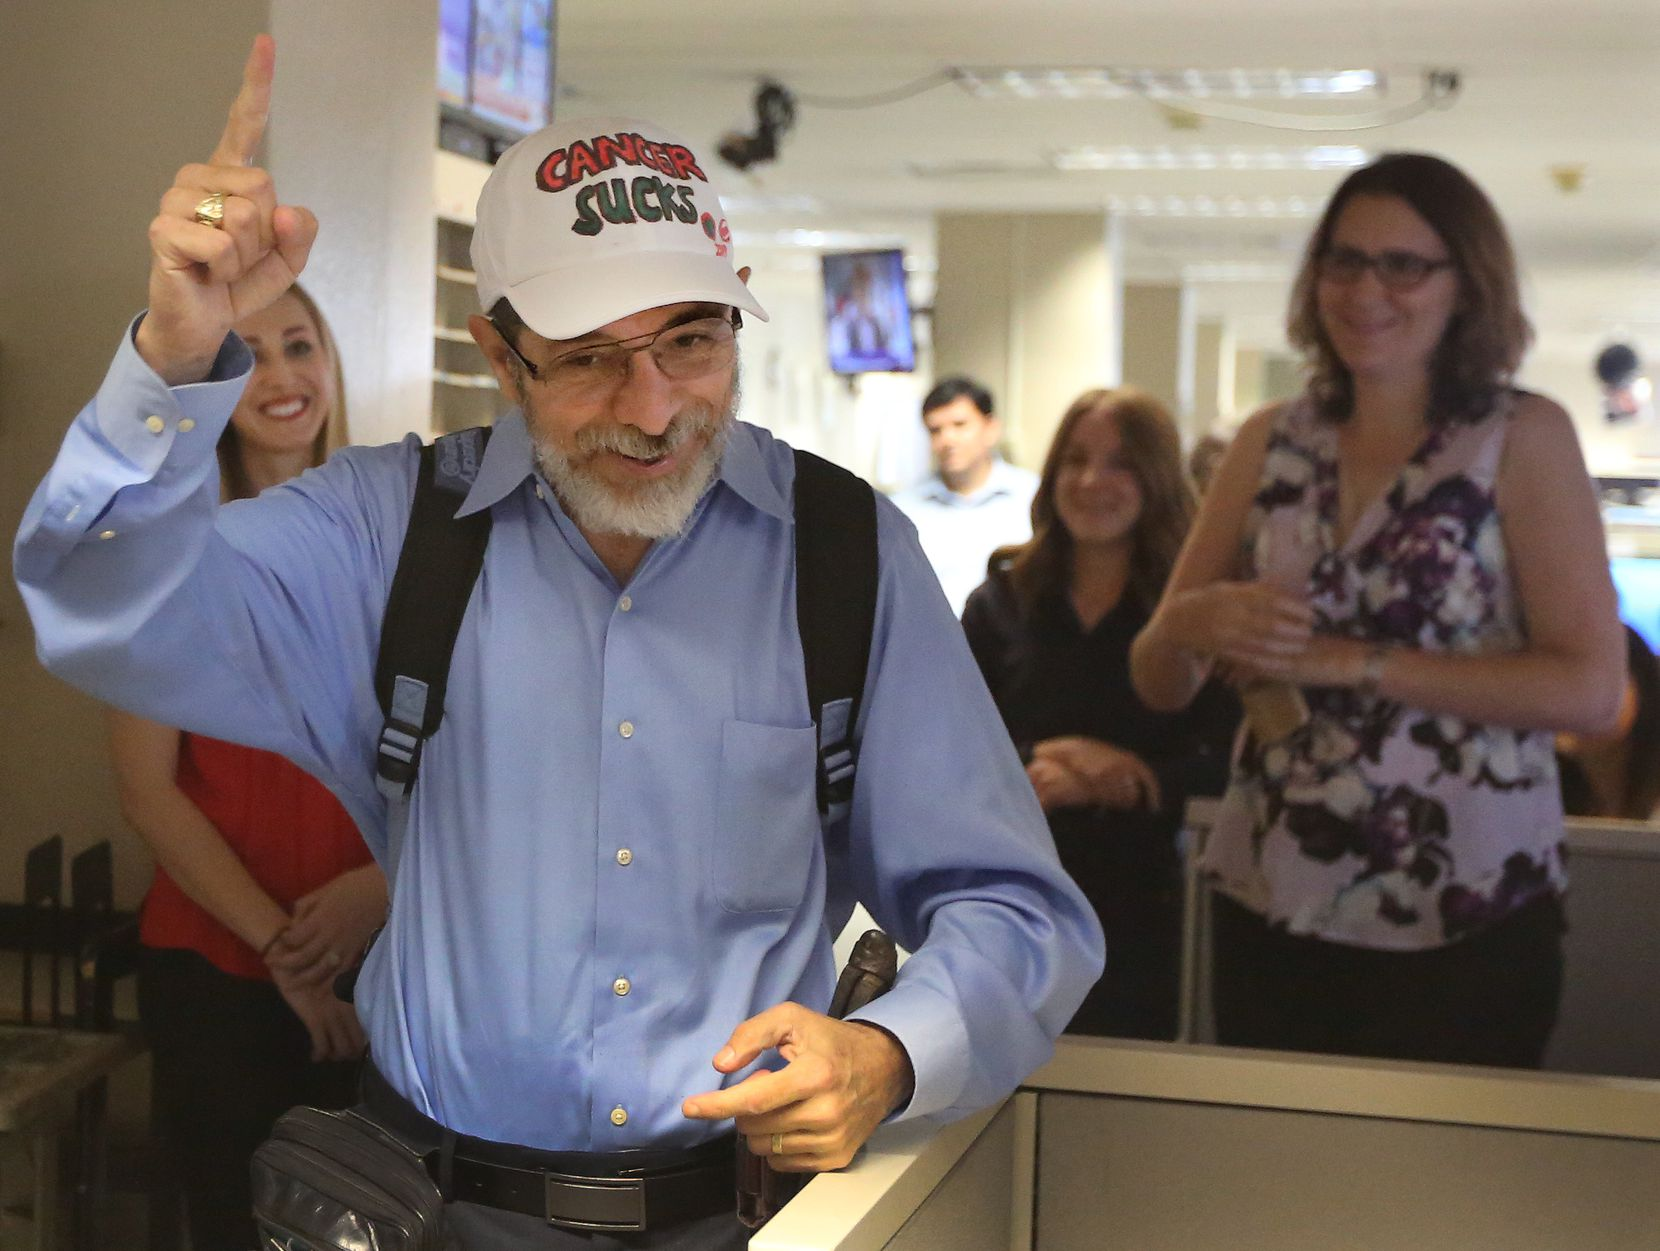 A typical moment of Jeffrey Weiss being himself, as he bade farewell to friends and co-workers at The Dallas Morning News in September 2017.